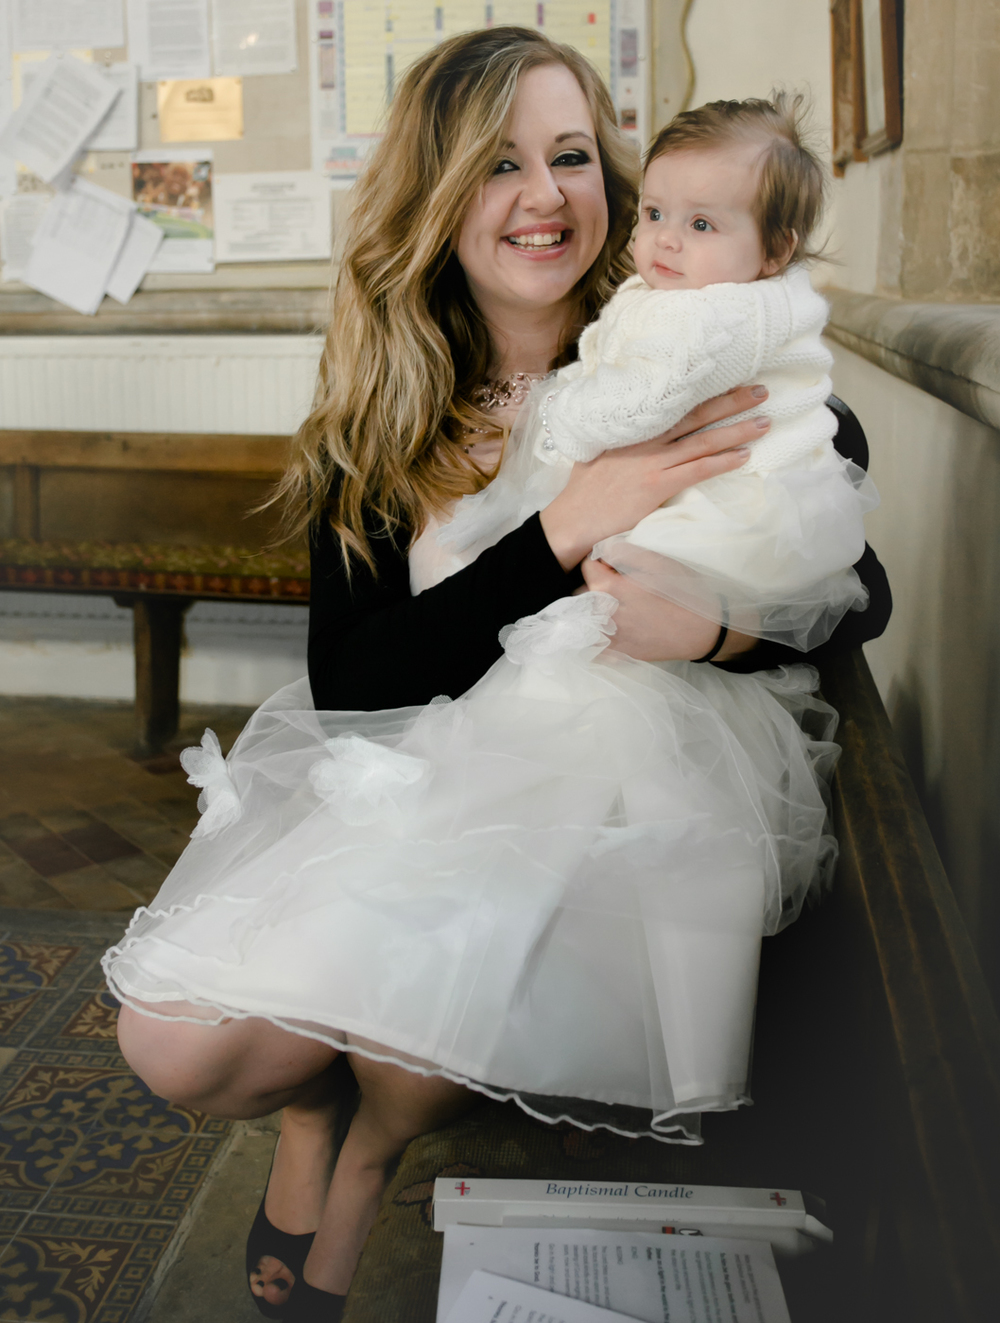 061 - Neave Christening Photography for Claire and Richard N. by Pamela and Mark Pugh www.mpmedia.co.uk -0074.JPG